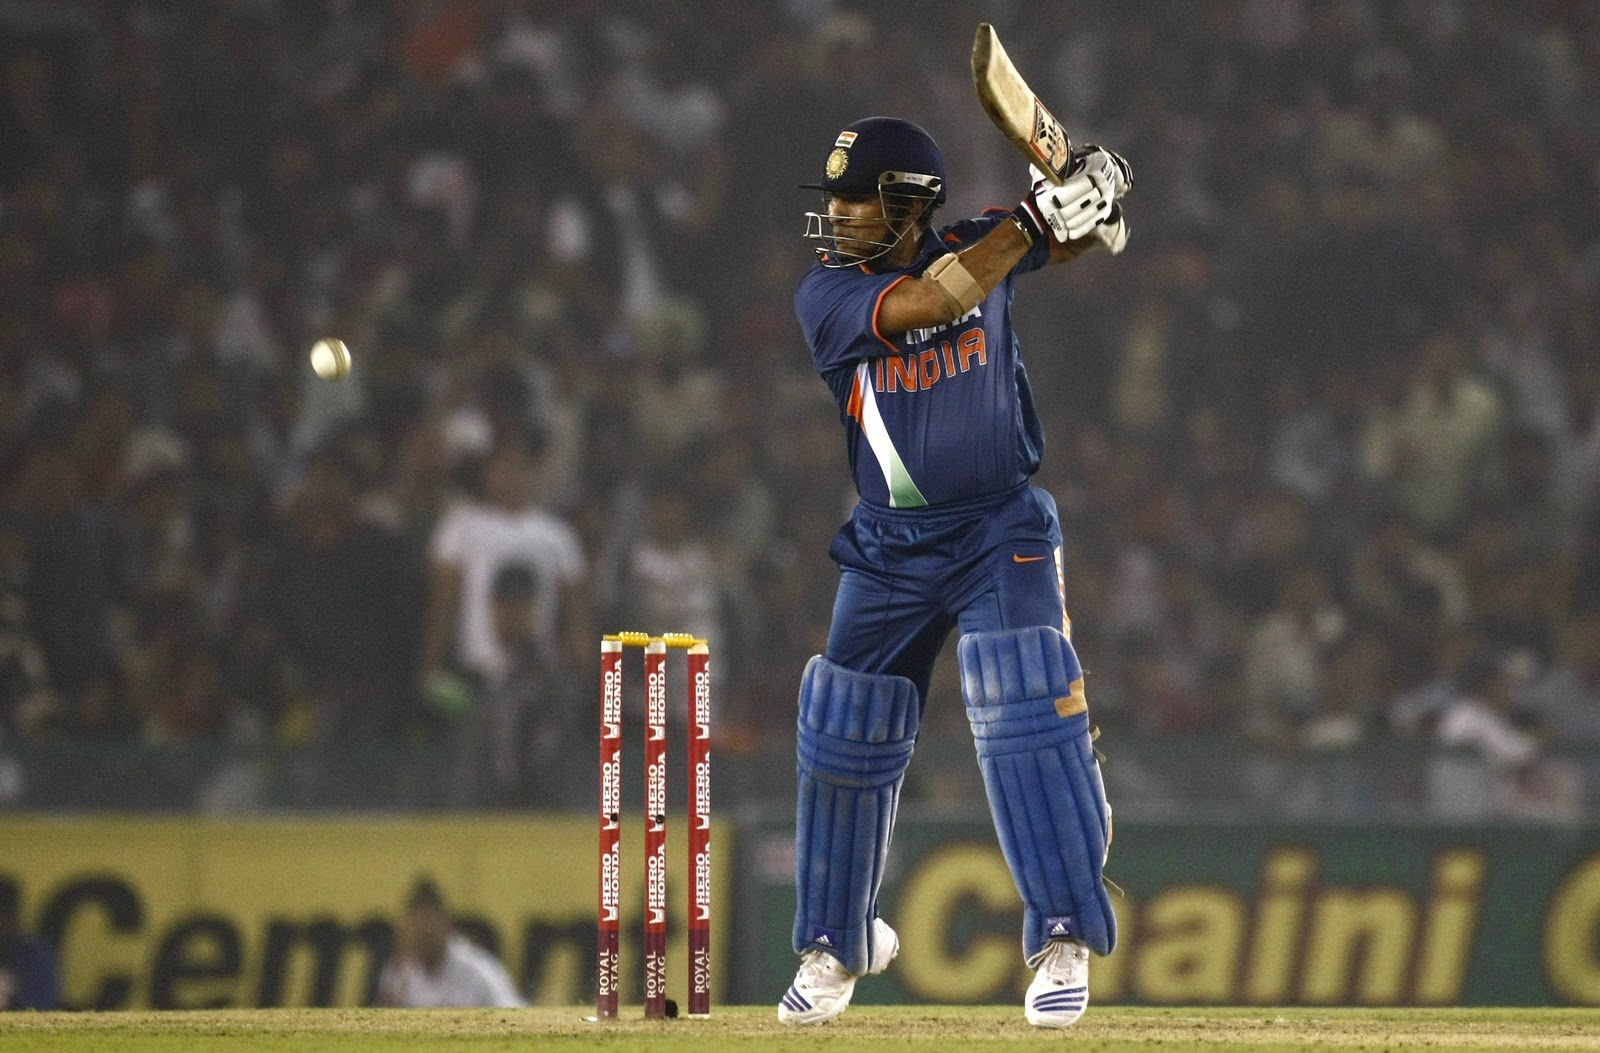 sachin tendulkar playing cricket hd photos